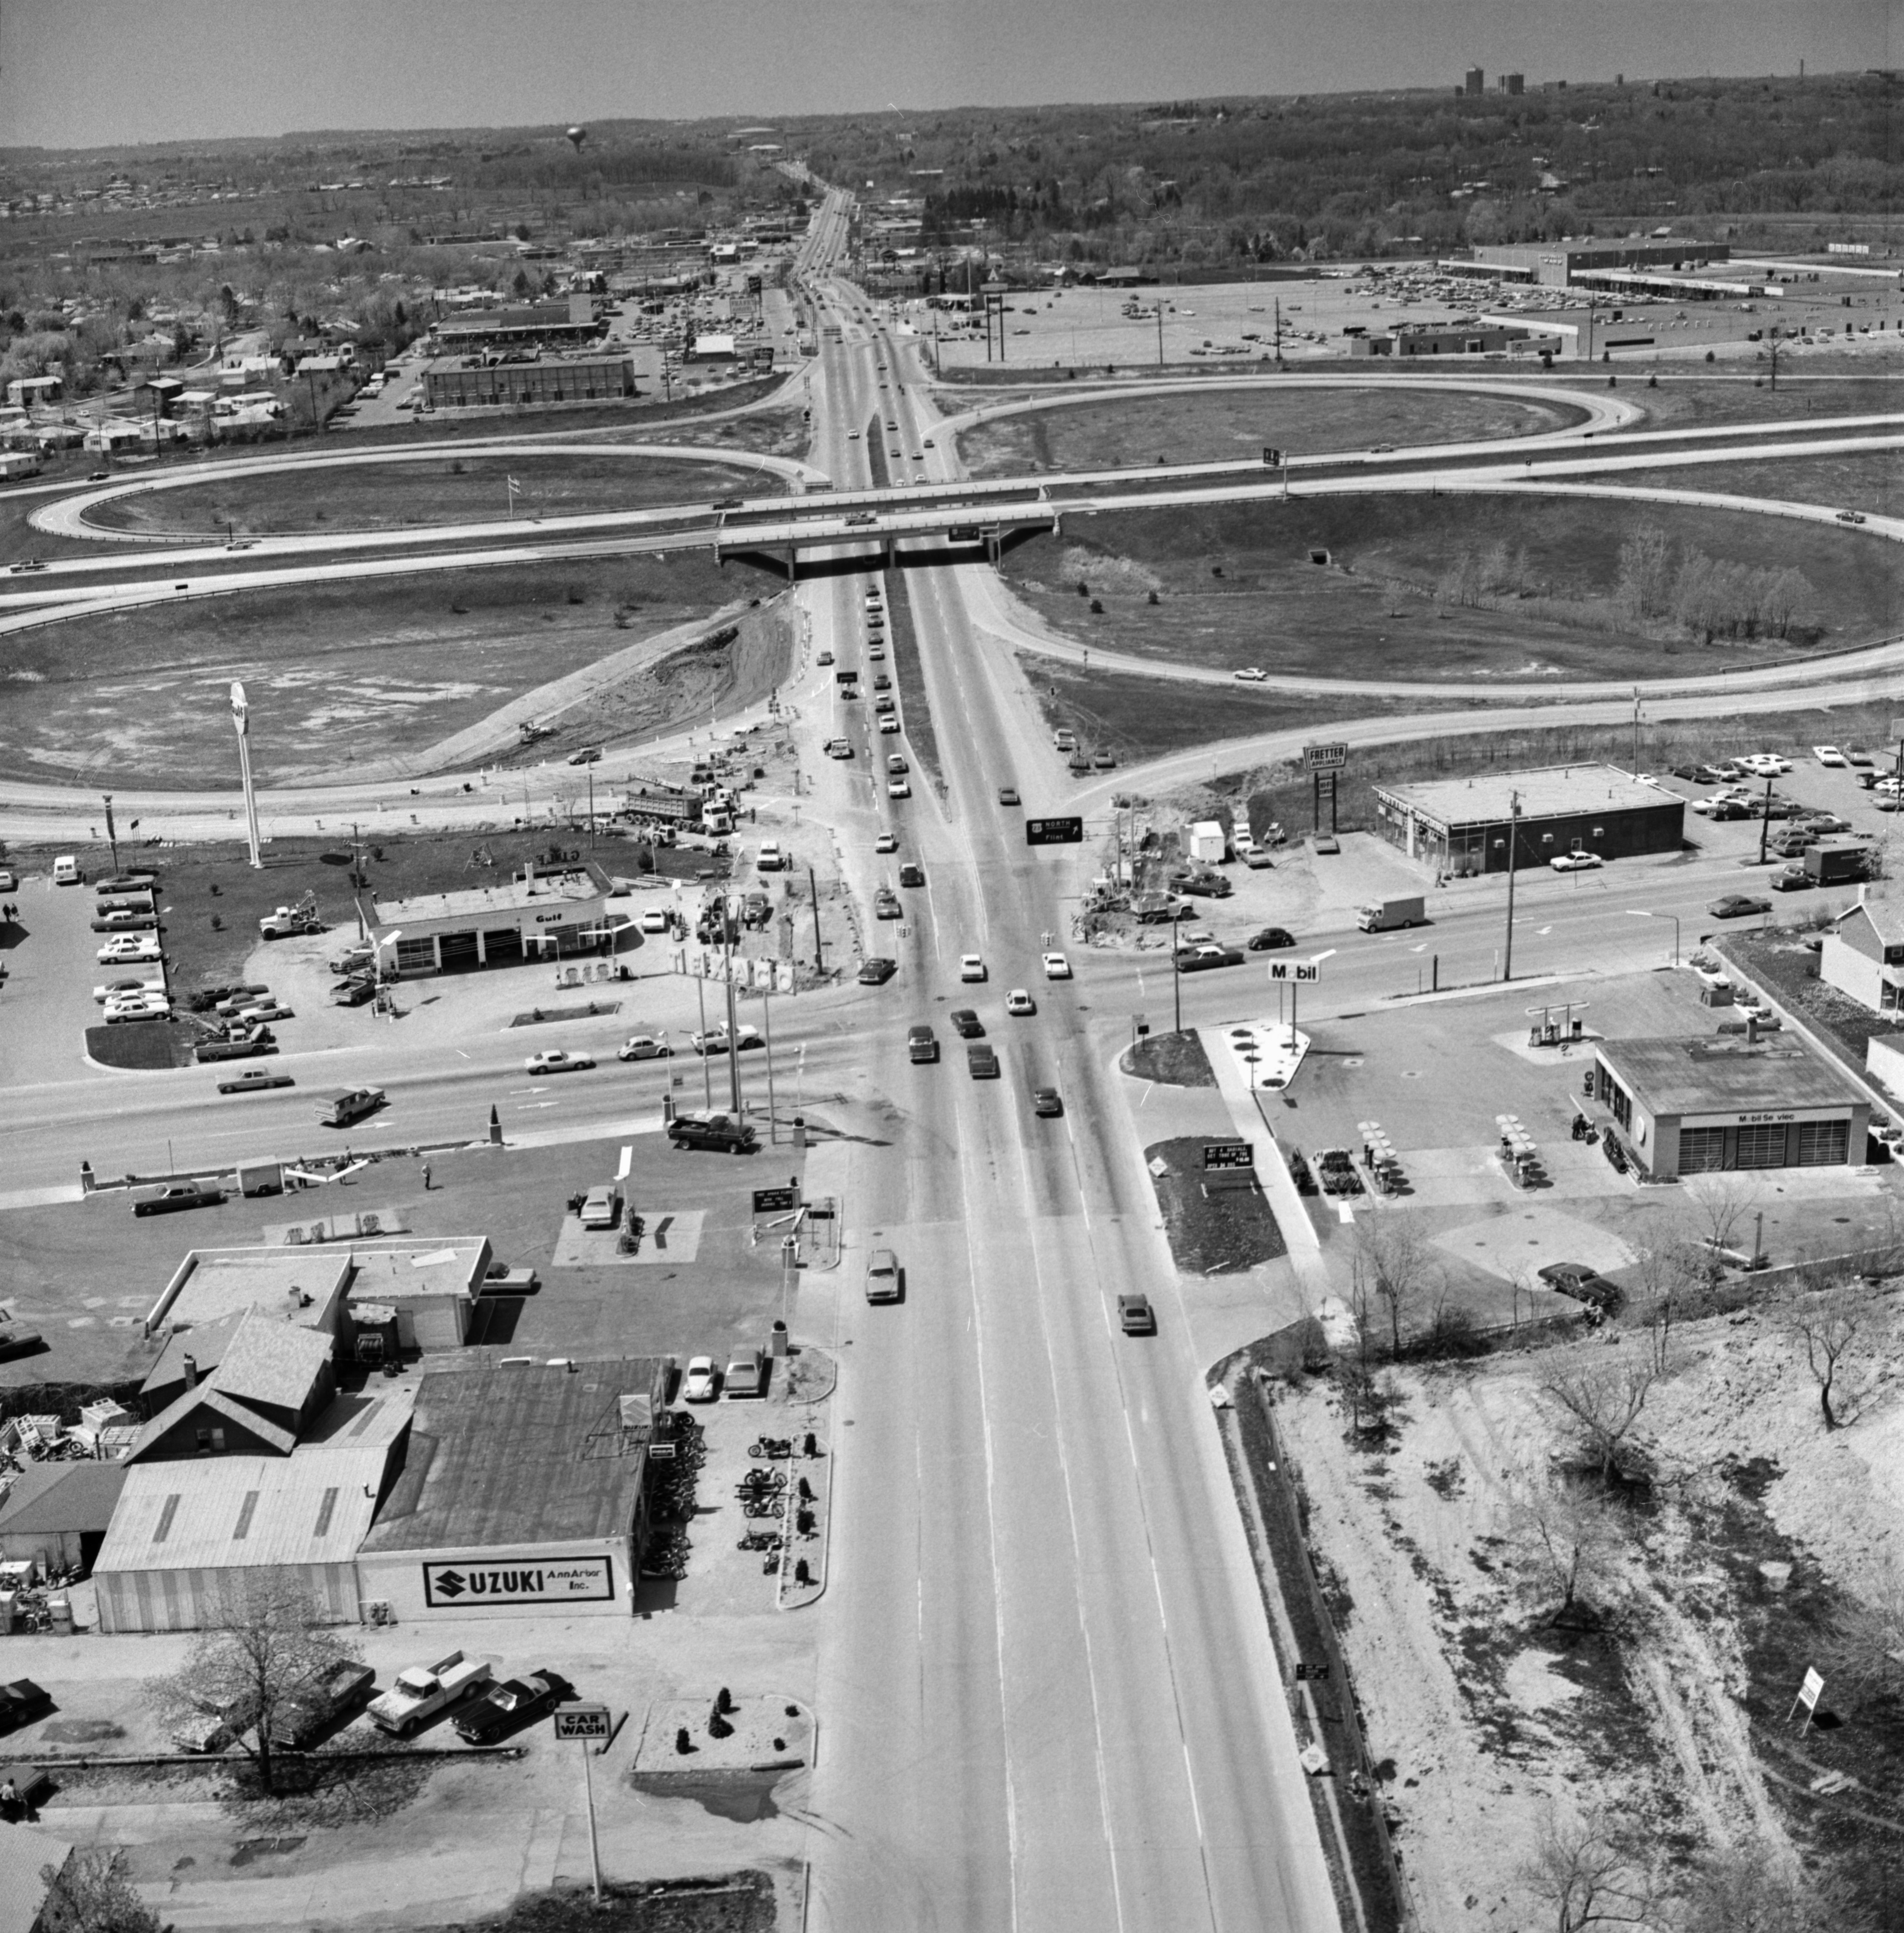 Aerial Photograph of Intersection of Washtenaw Ave., Carpenter Rd., & Hogback Rd., May 1975 image